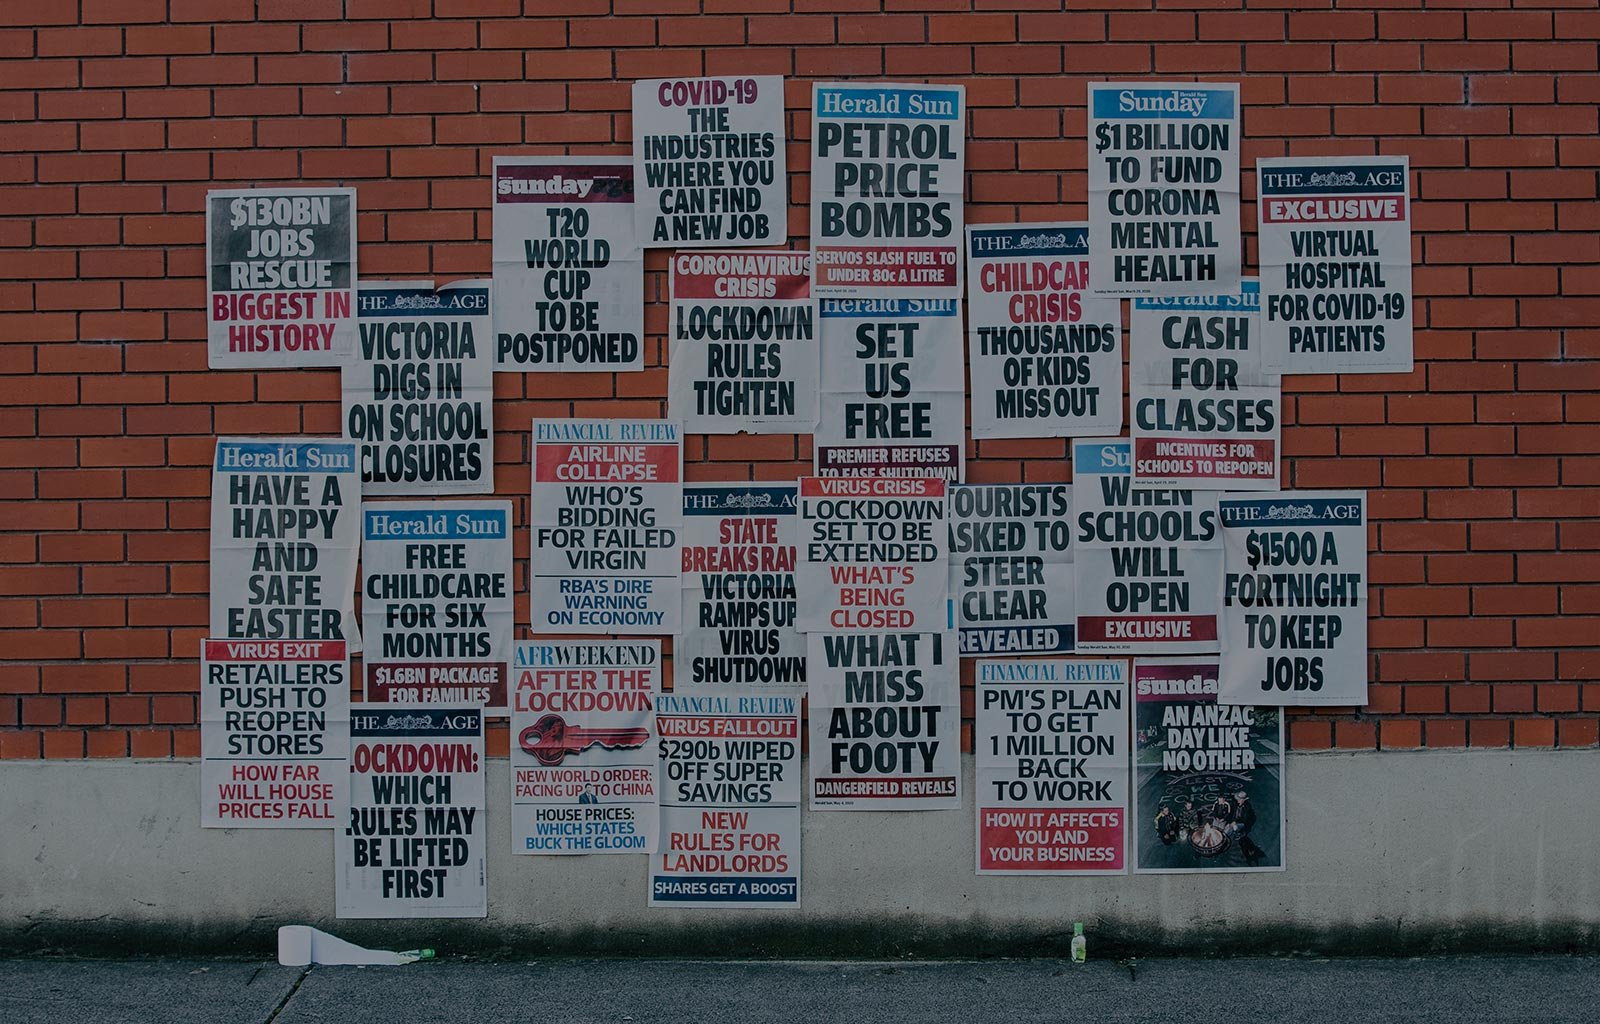 Melbourne news article headlines on a brick wall.